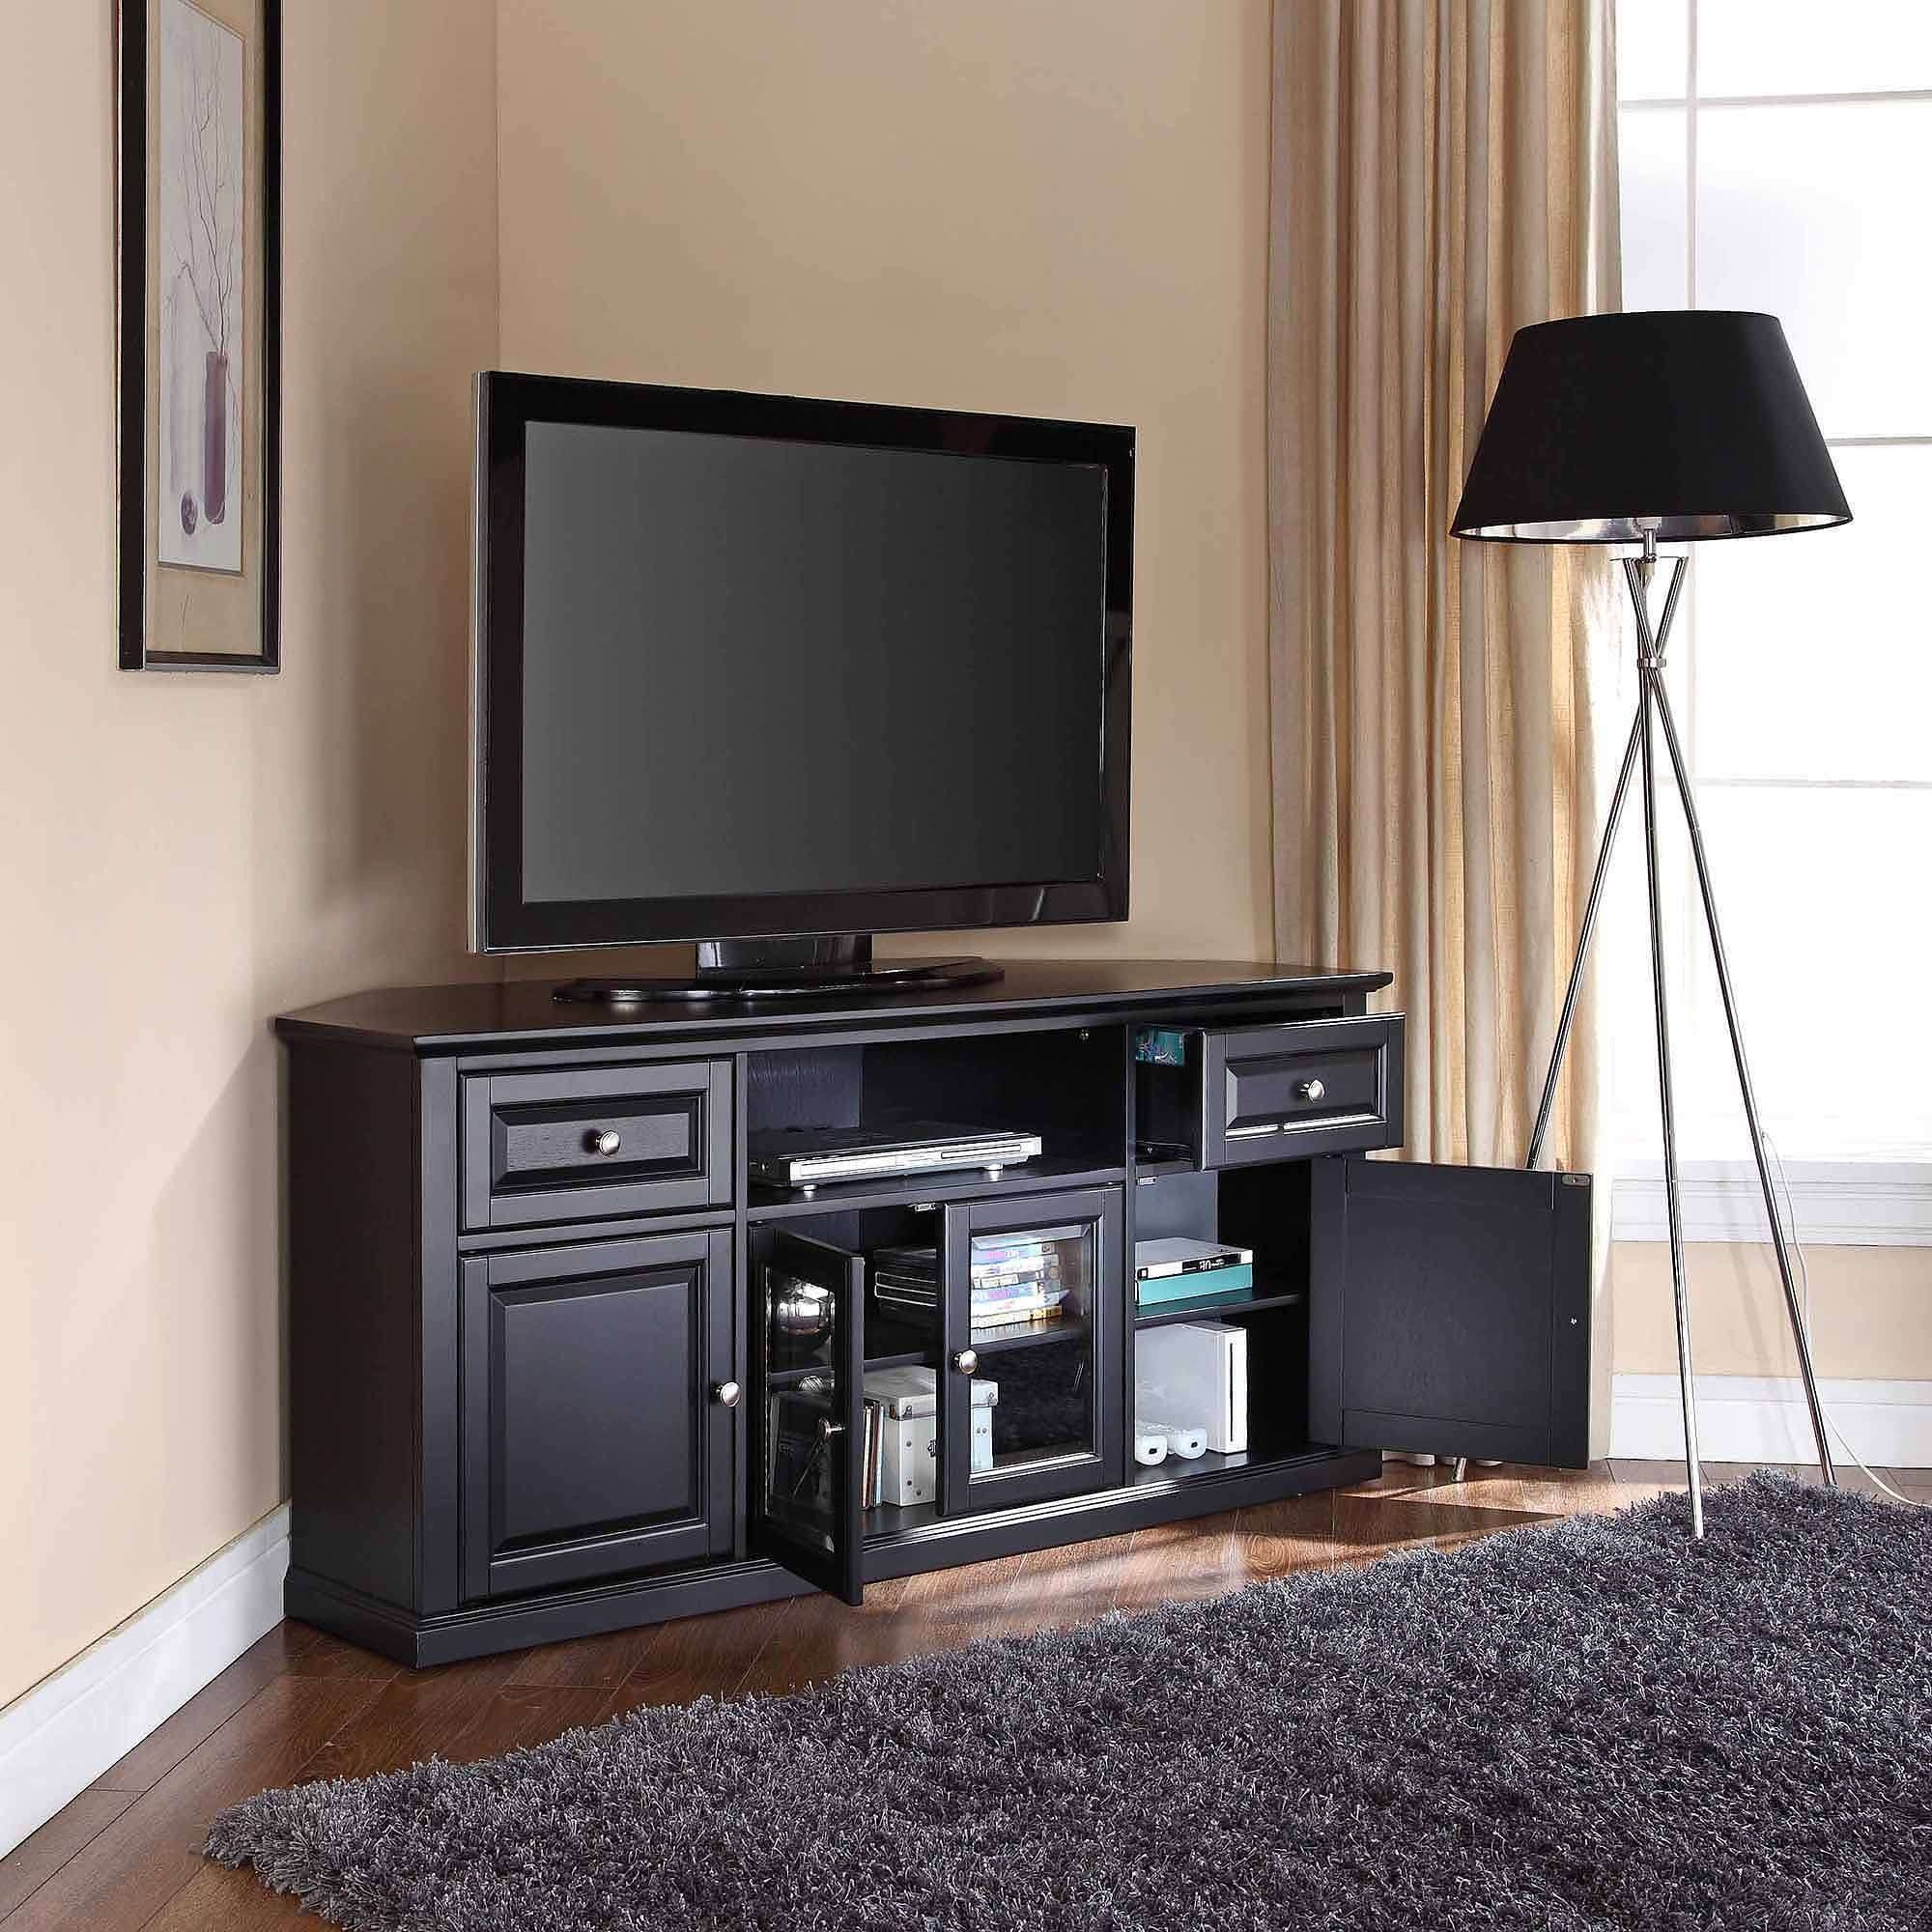 "Crosley Furniture Corner Tv Stand For Tvs Up To 60"" – Walmart Regarding Wood Corner Tv Cabinets (View 3 of 20)"